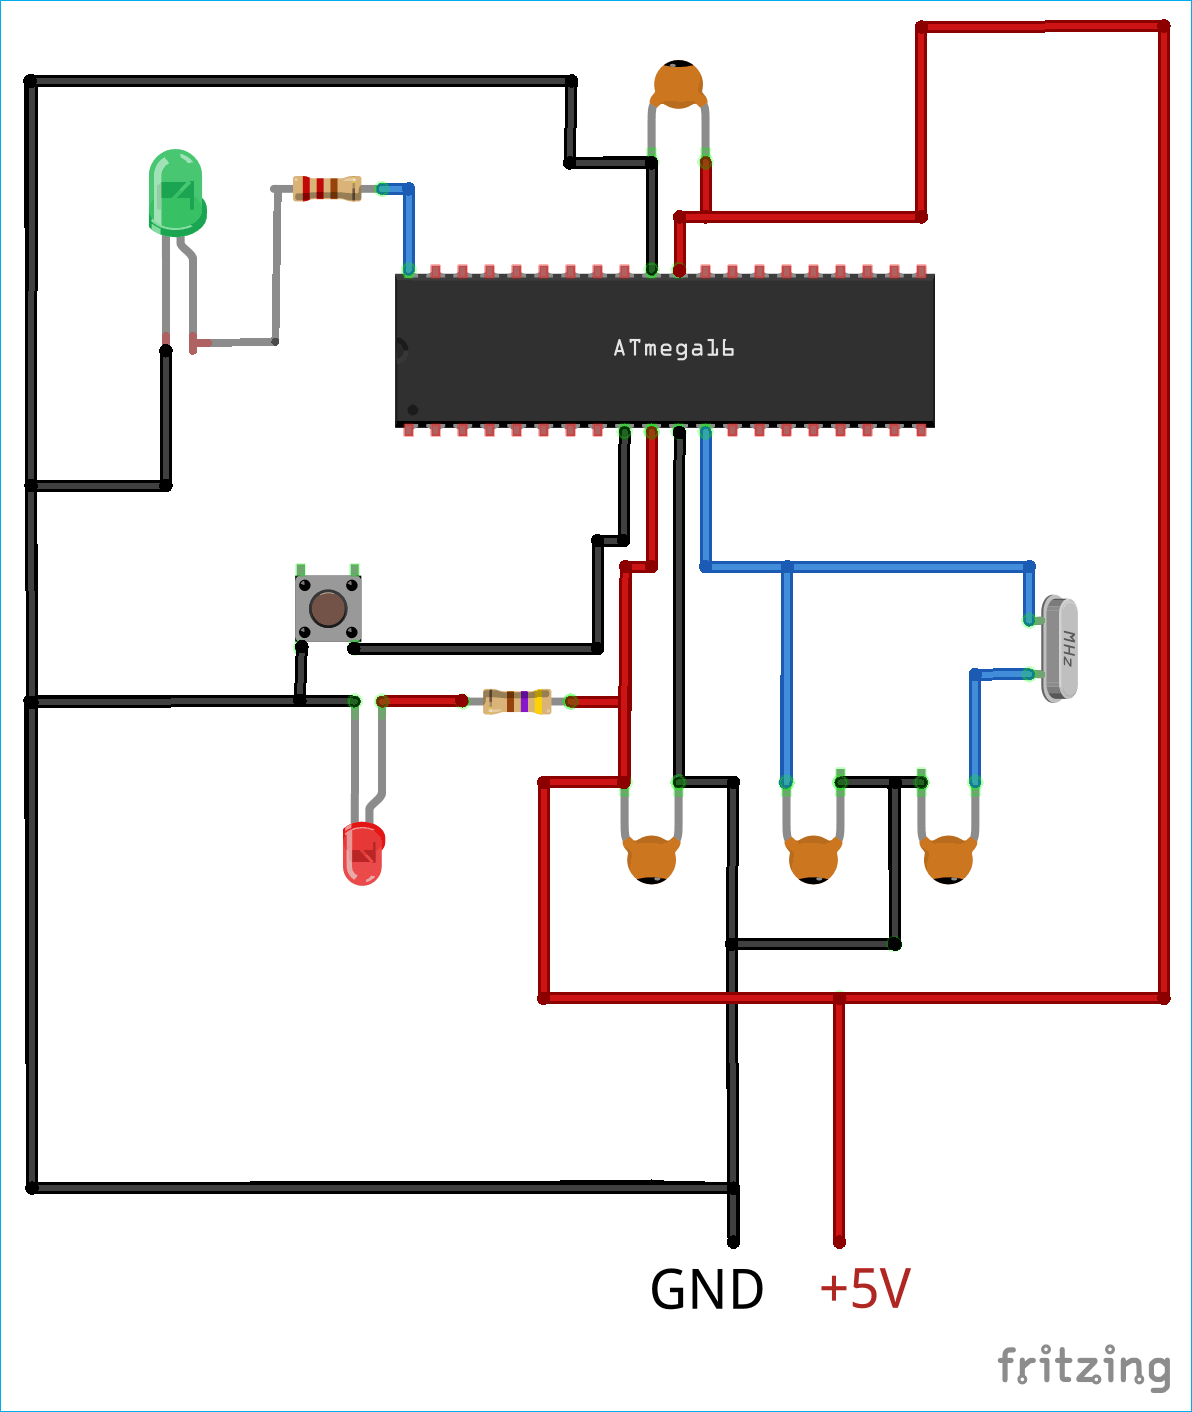 Fine How To Program Avr Microcontroller Atmega16 Using Usbasp Programmer Wiring Cloud Nuvitbieswglorg